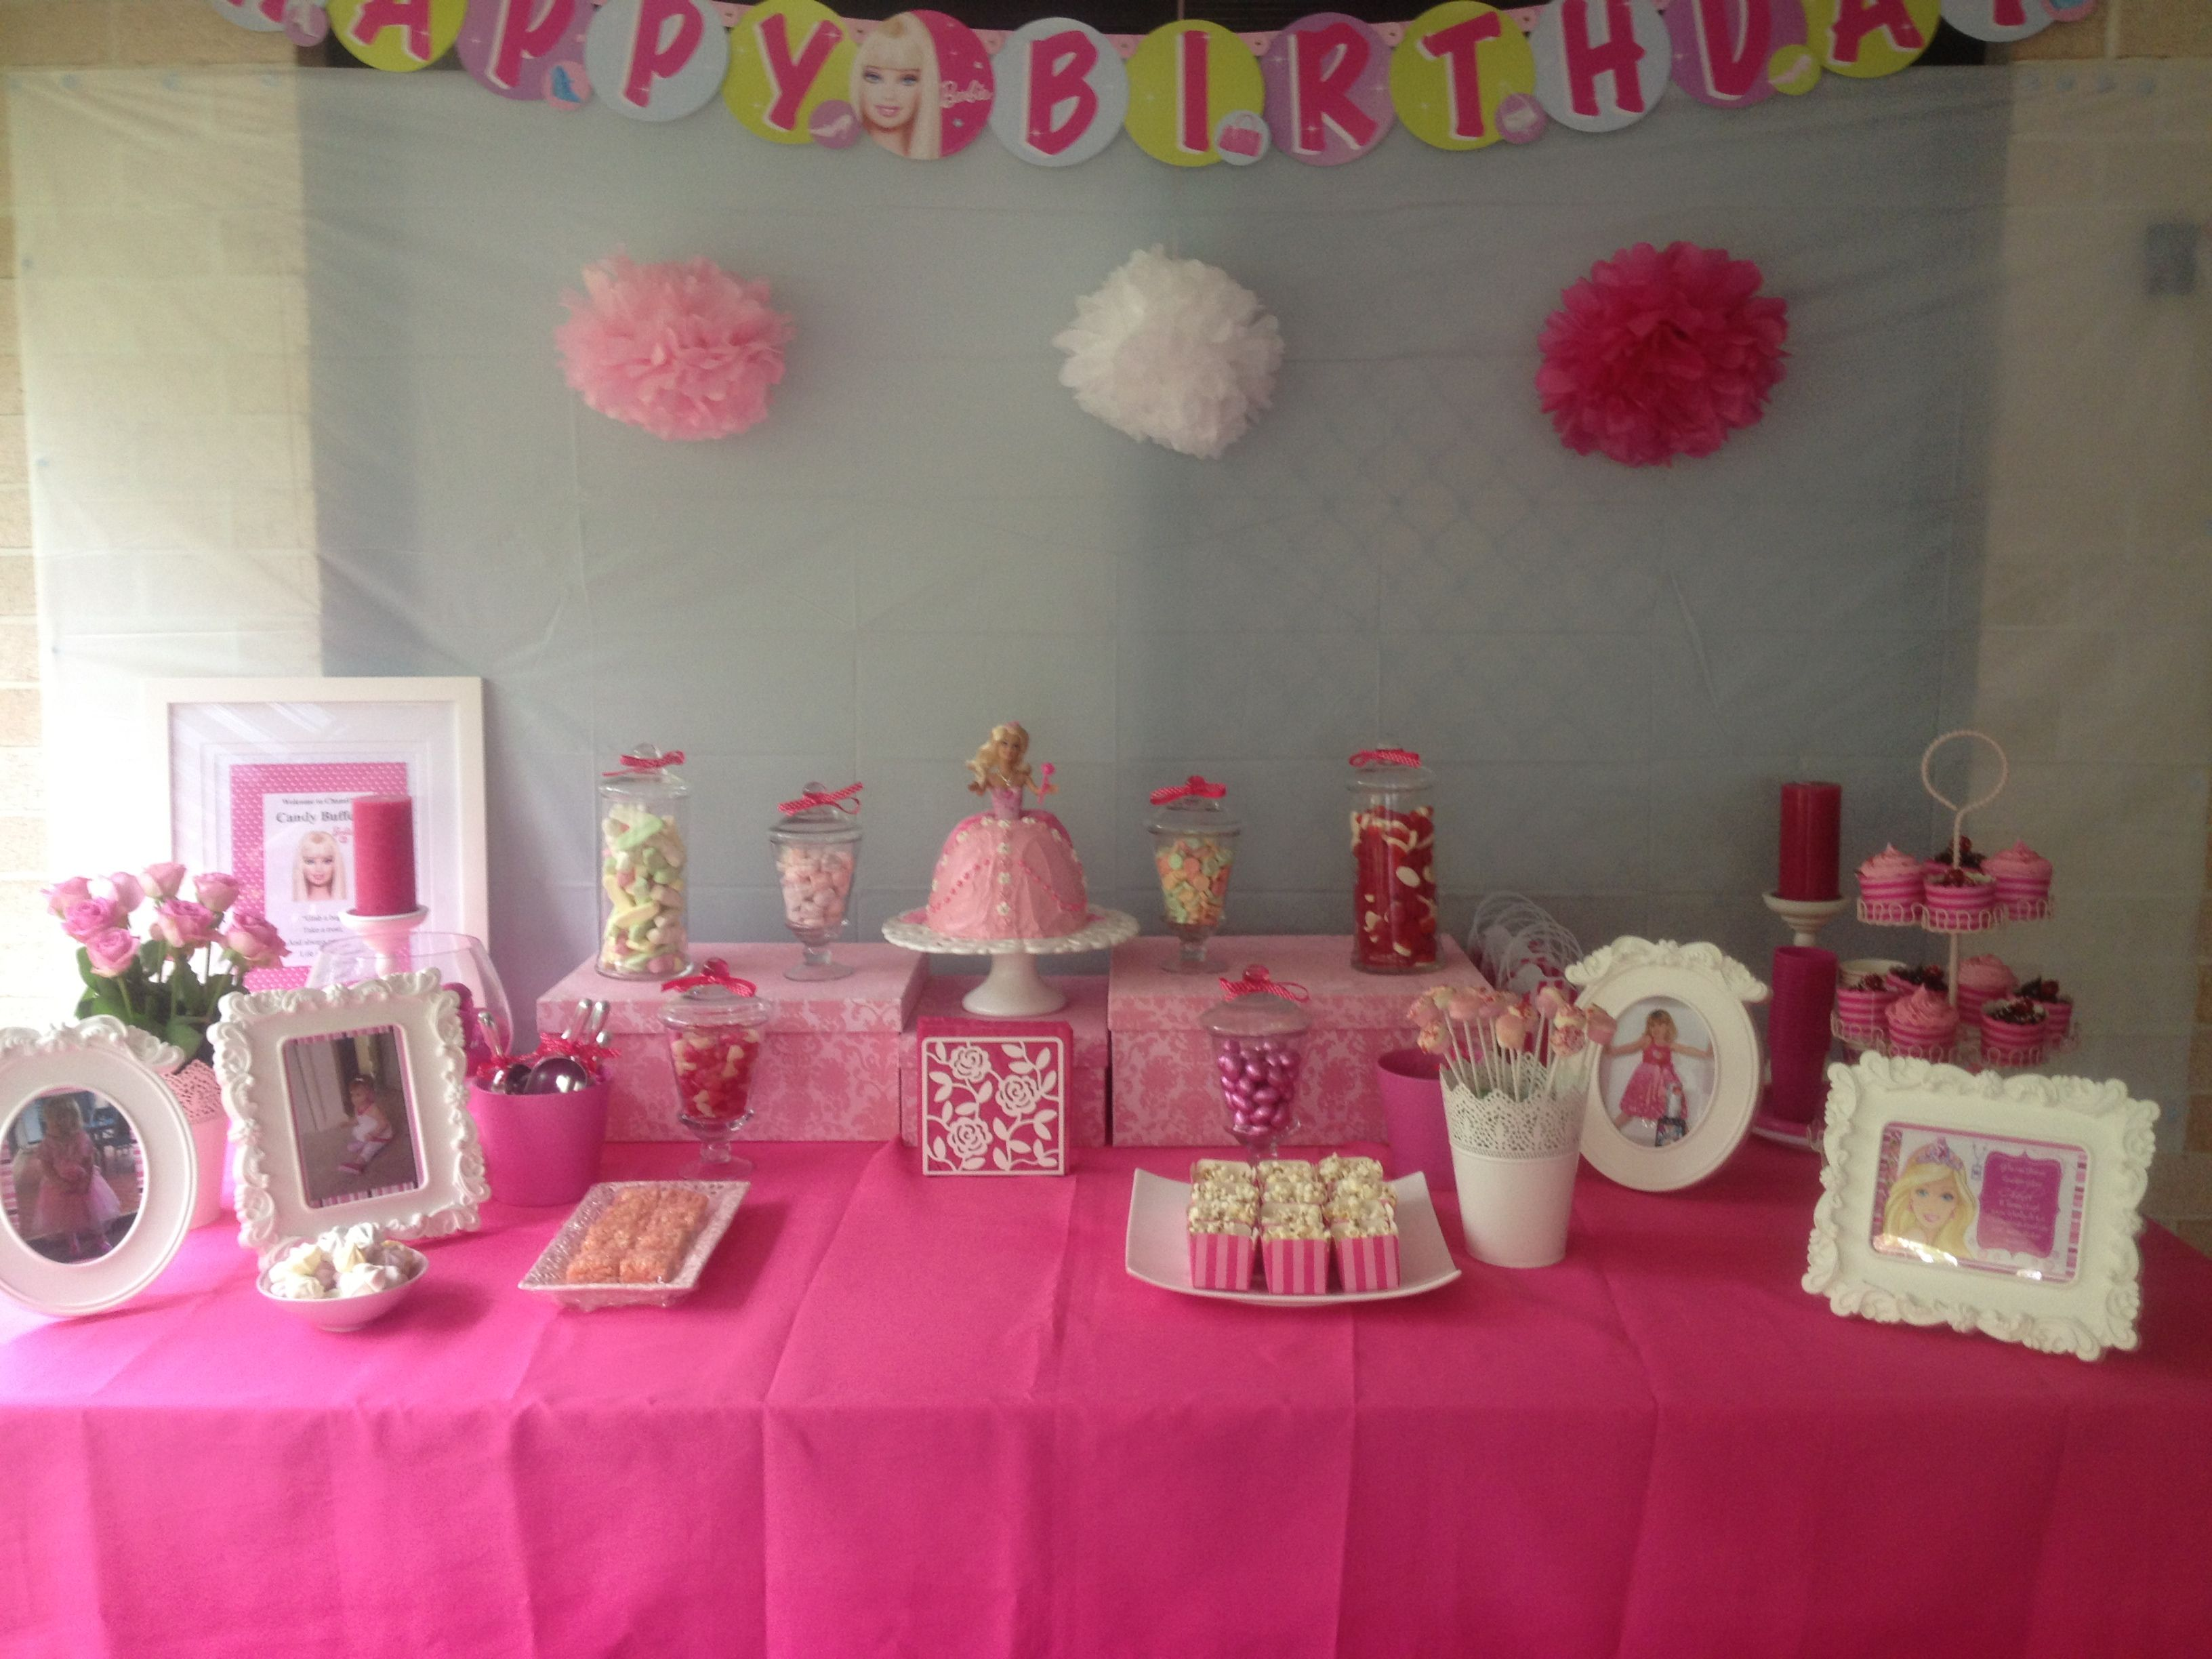 Marvelous Pink Barbie Candy Buffet Things I Love Barbie Party Interior Design Ideas Clesiryabchikinfo